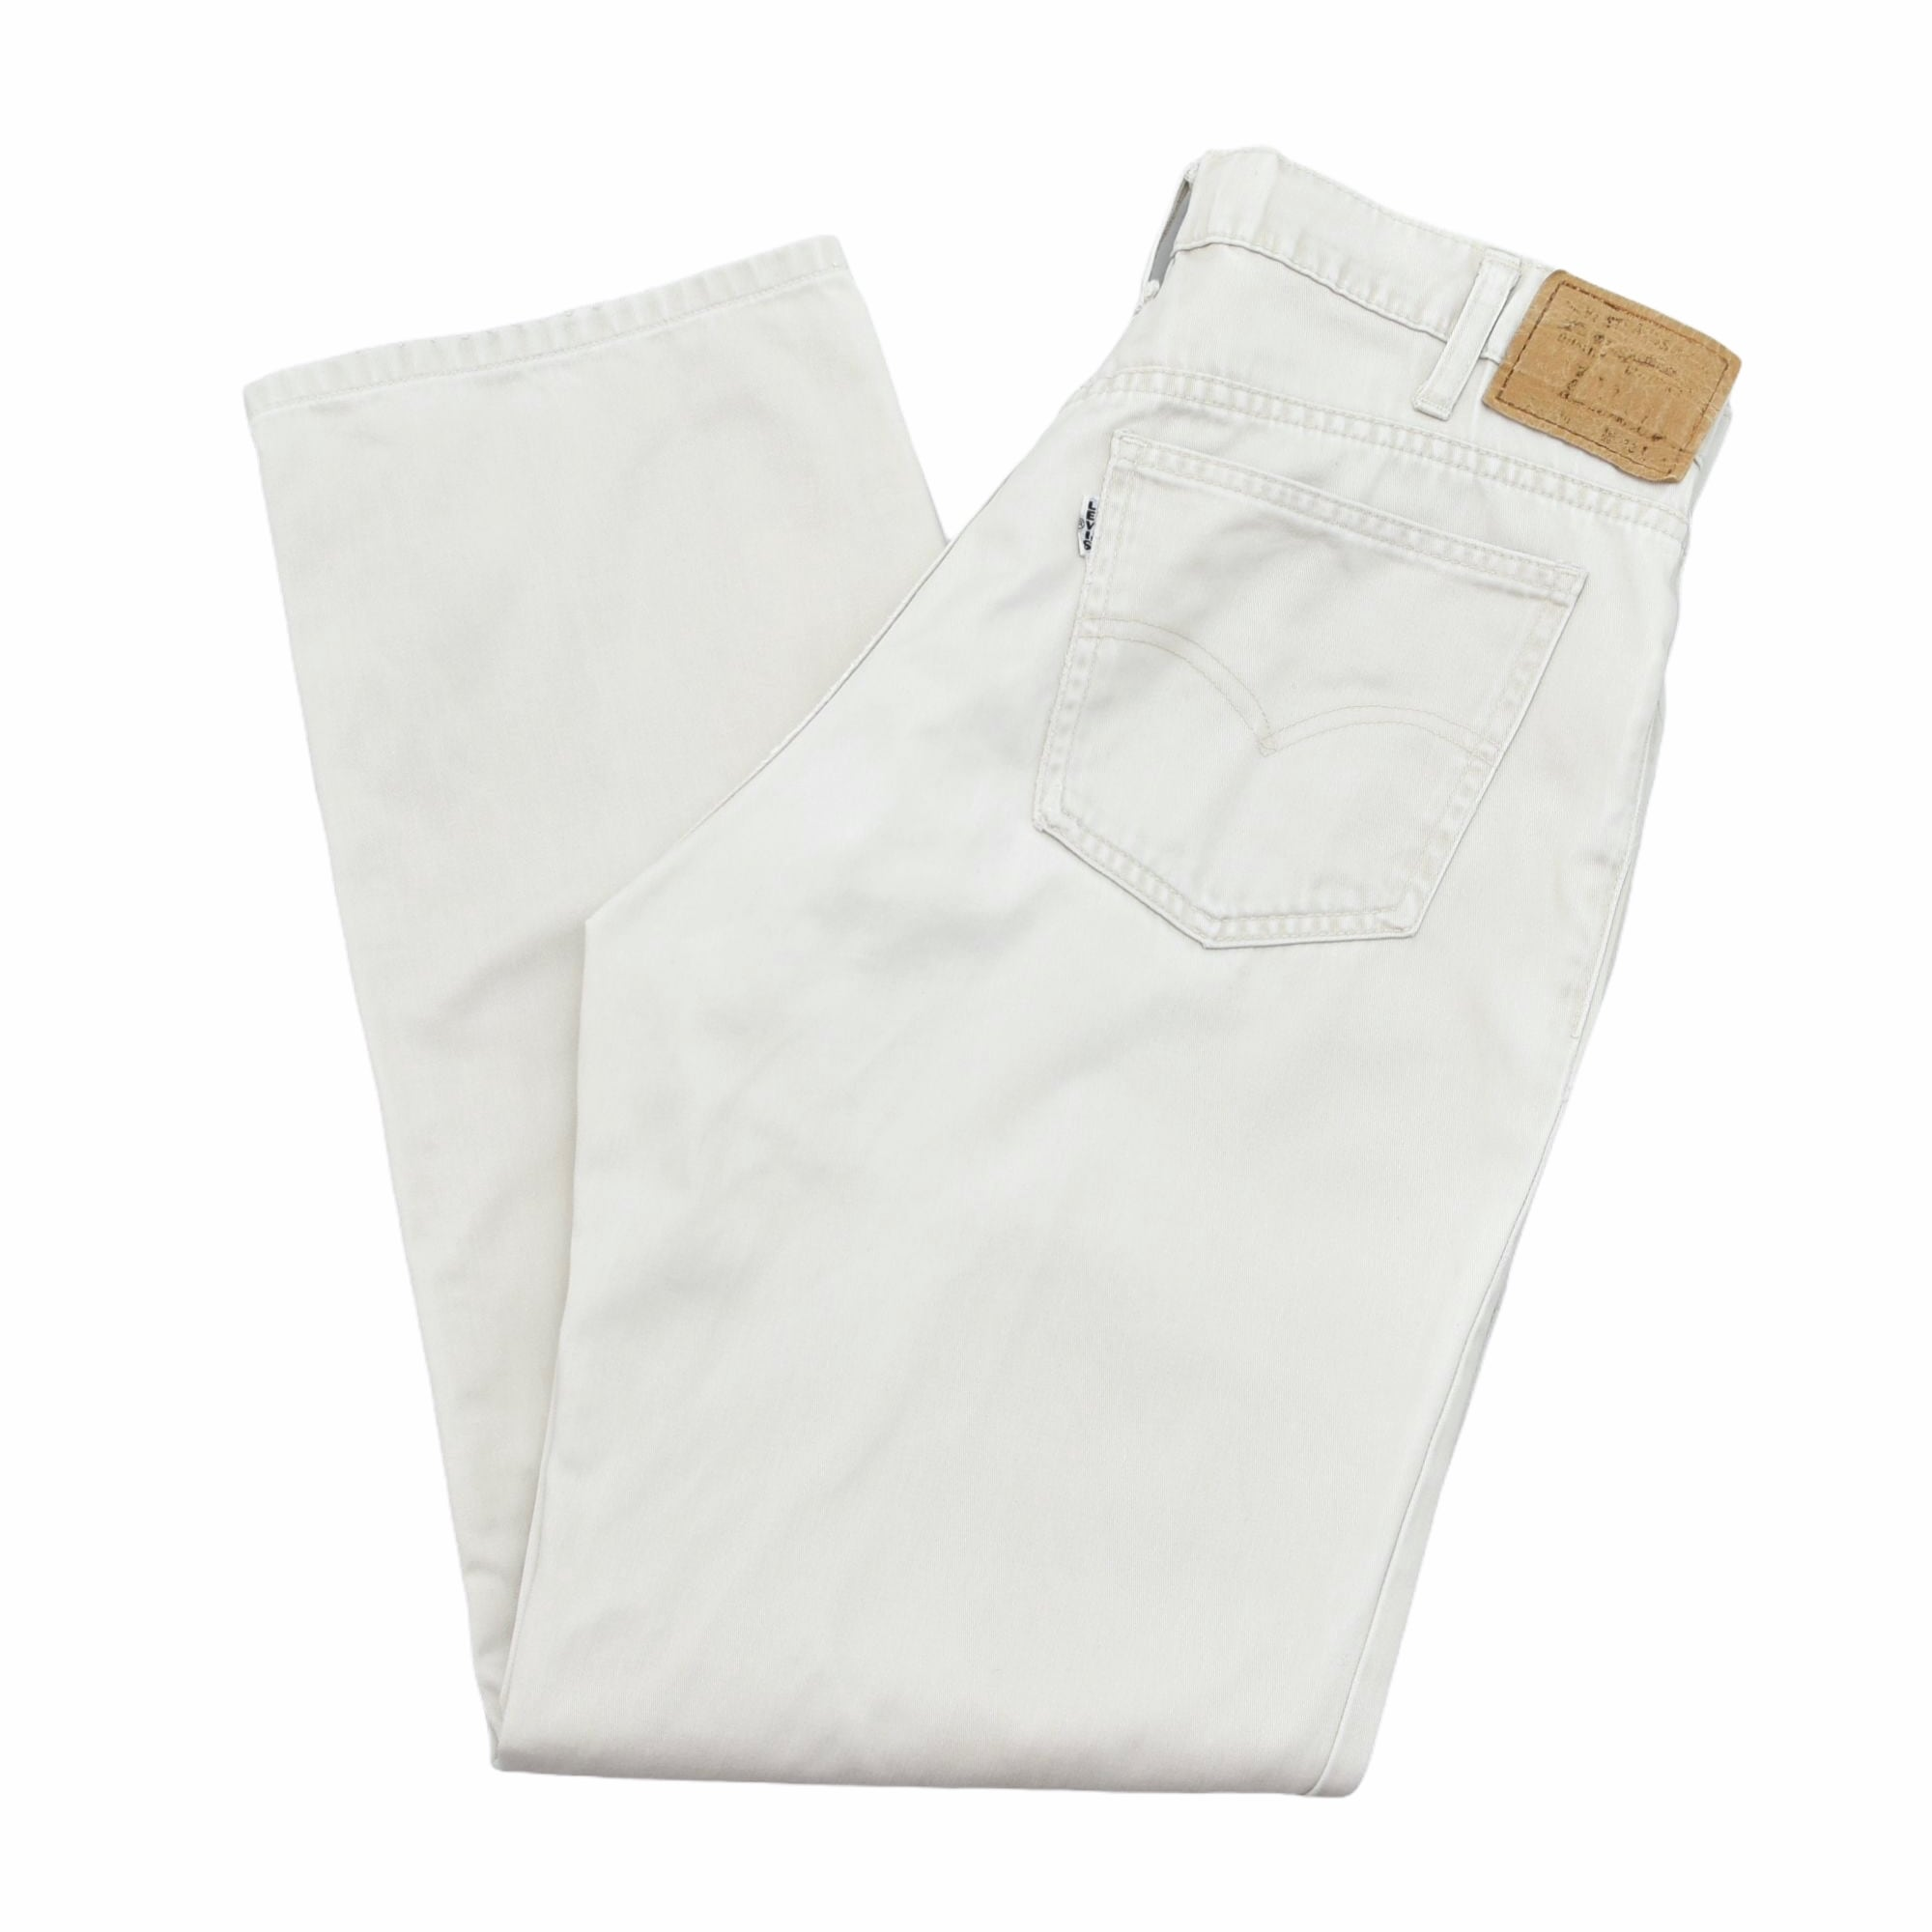 90s LEVI'S 513-30 cotton pants Made in JAPAN